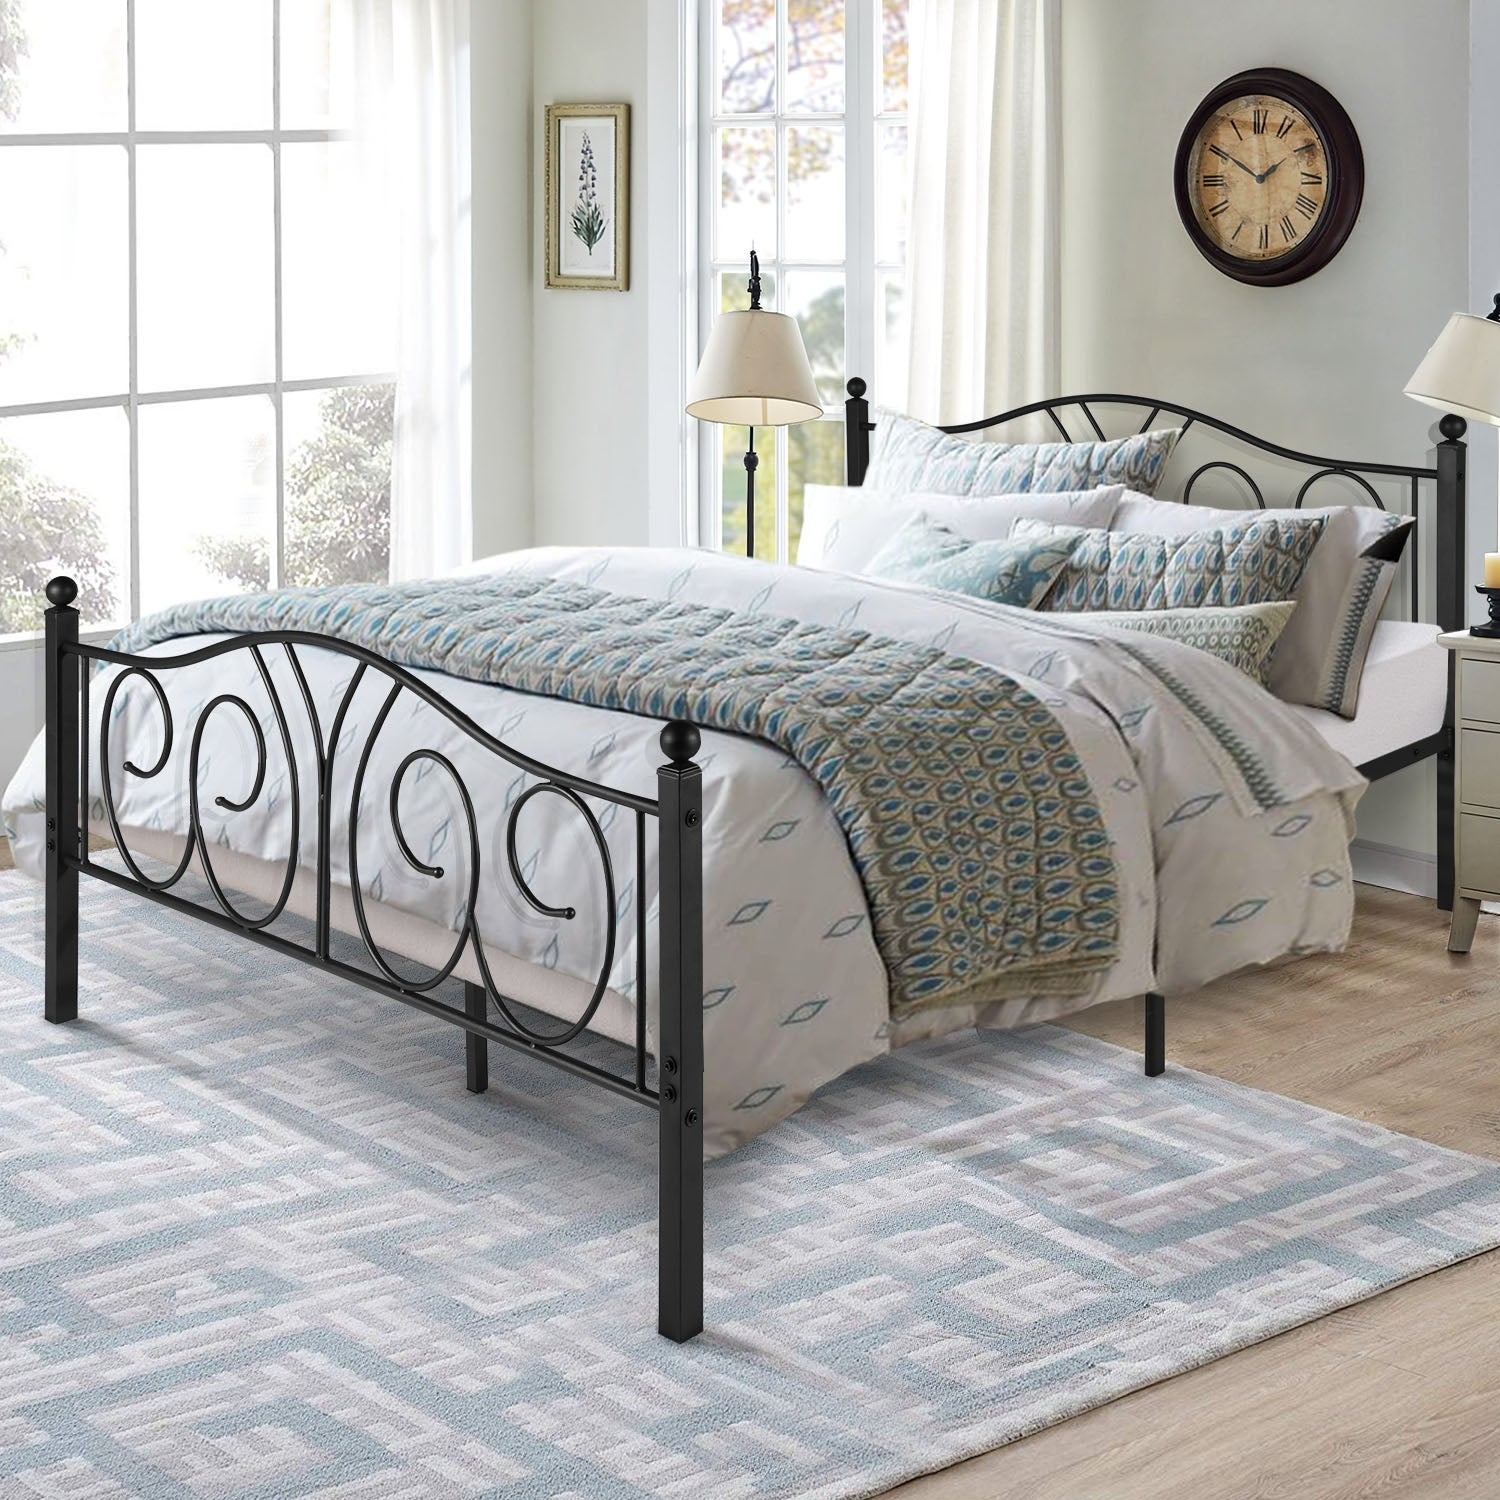 Vecelo Vintage Graceful Classic Scroll Black Metal Bed Iron Kids Bed Twin Full Queen Overstock 30100822 Twin